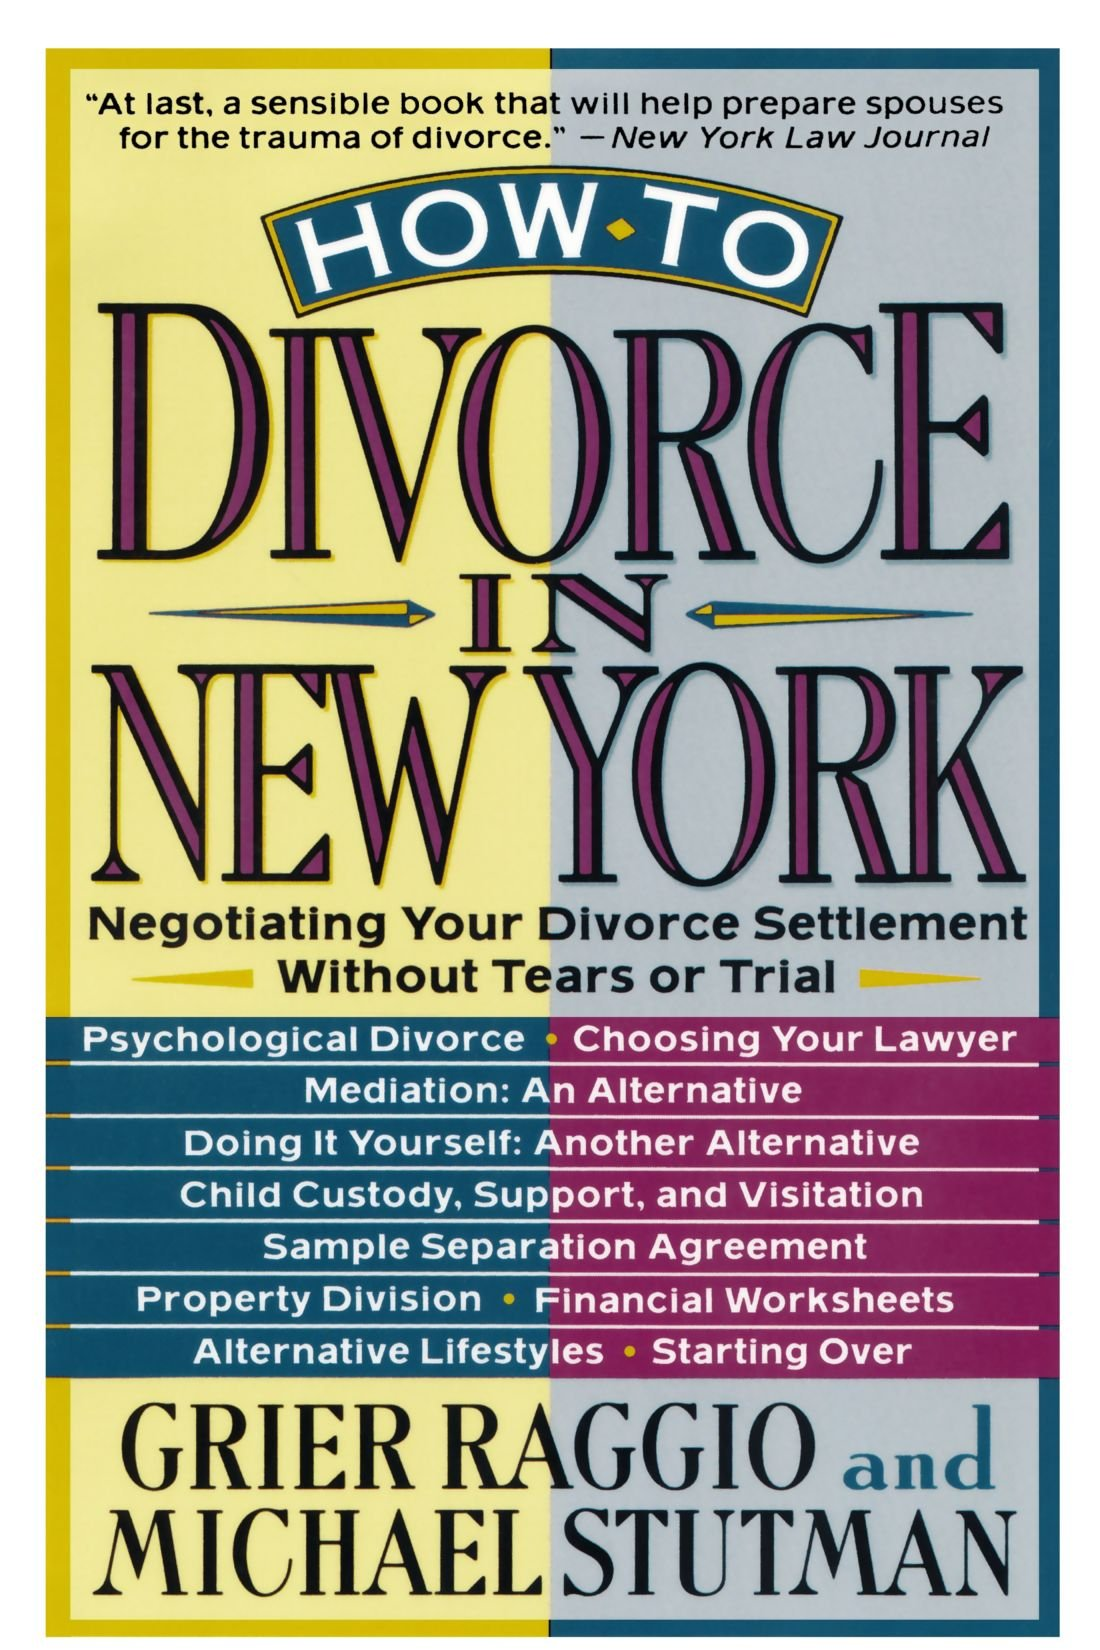 How to divorce in new york negotiating your divorce settlement how to divorce in new york negotiating your divorce settlement without tears or trial grier h raggio michael stutman 9780312092733 amazon books solutioingenieria Images